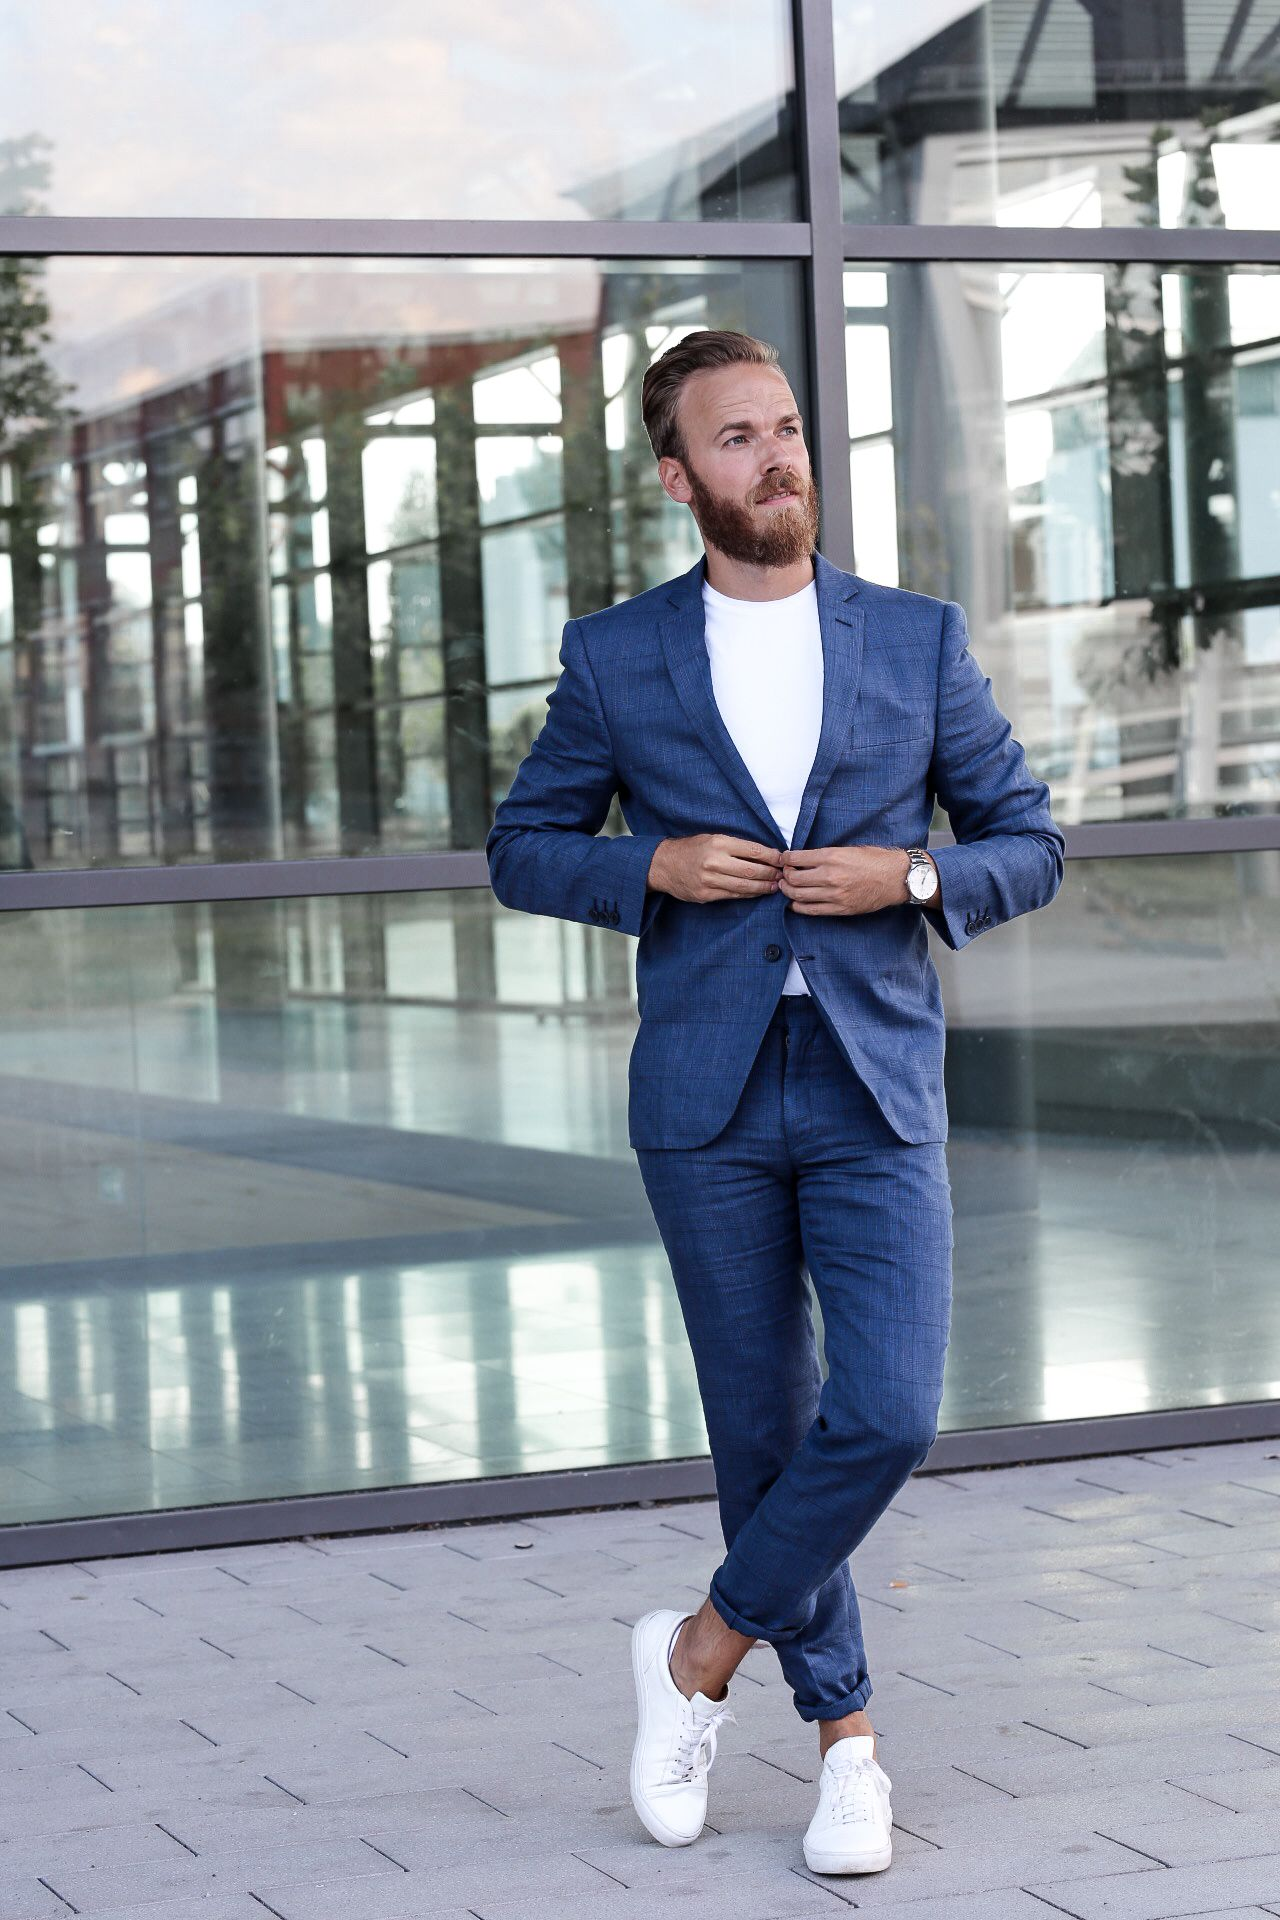 Fashion Massgeschneiderter Anzug Von Hockerty Sneakers Men Fashion Linen Suits For Men Suits And Sneakers